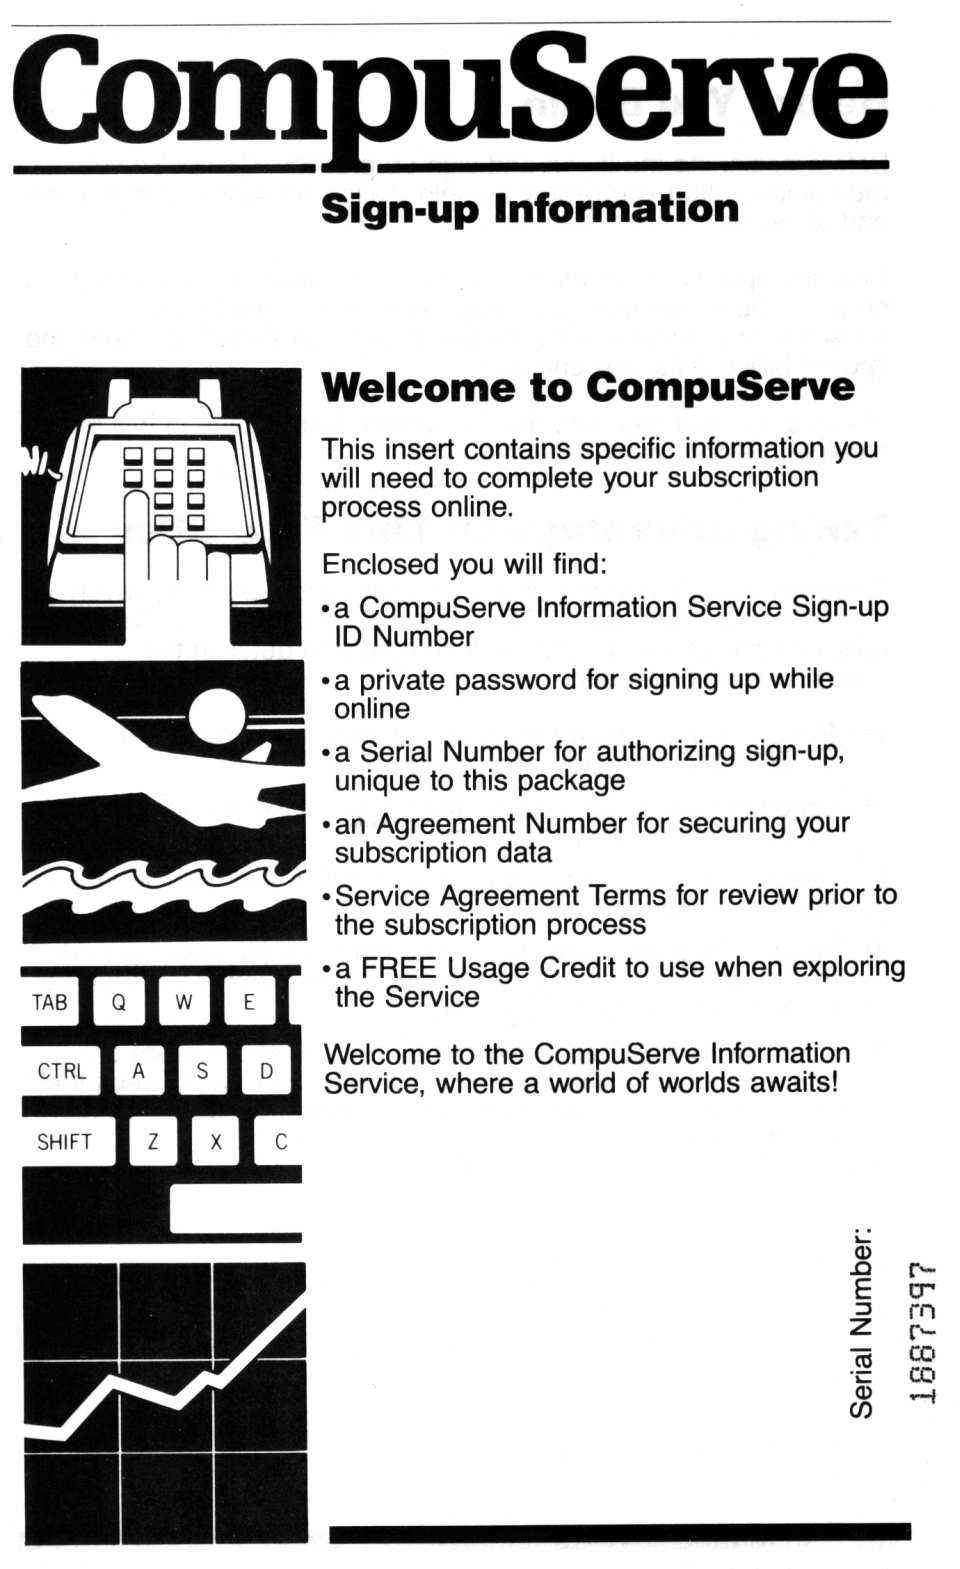 [CompuServe Sign-up Information (1/4)]